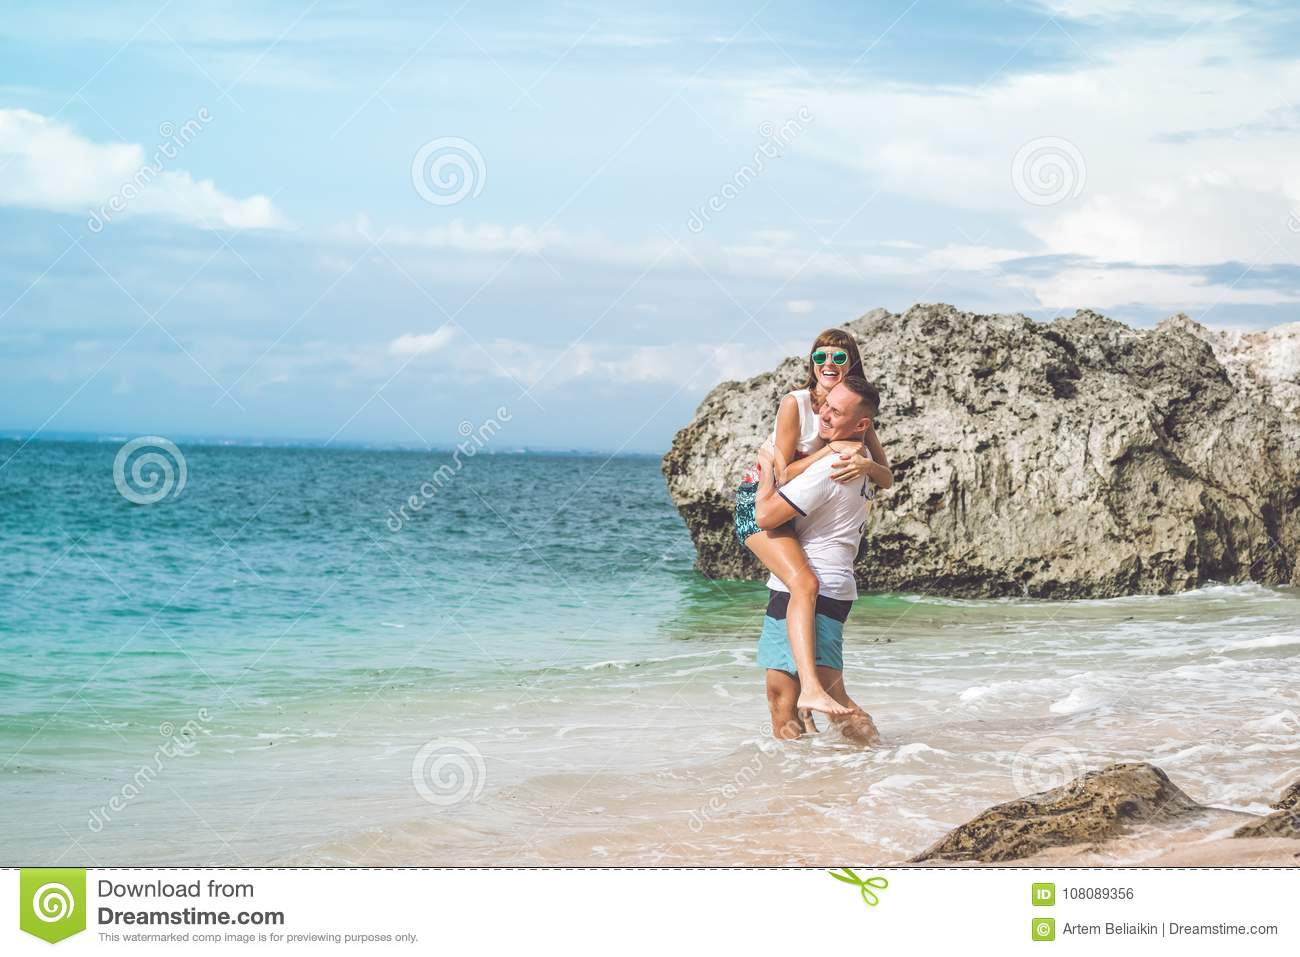 Happy Young Honeymoon Couple Having Fun On The Beach Ocean